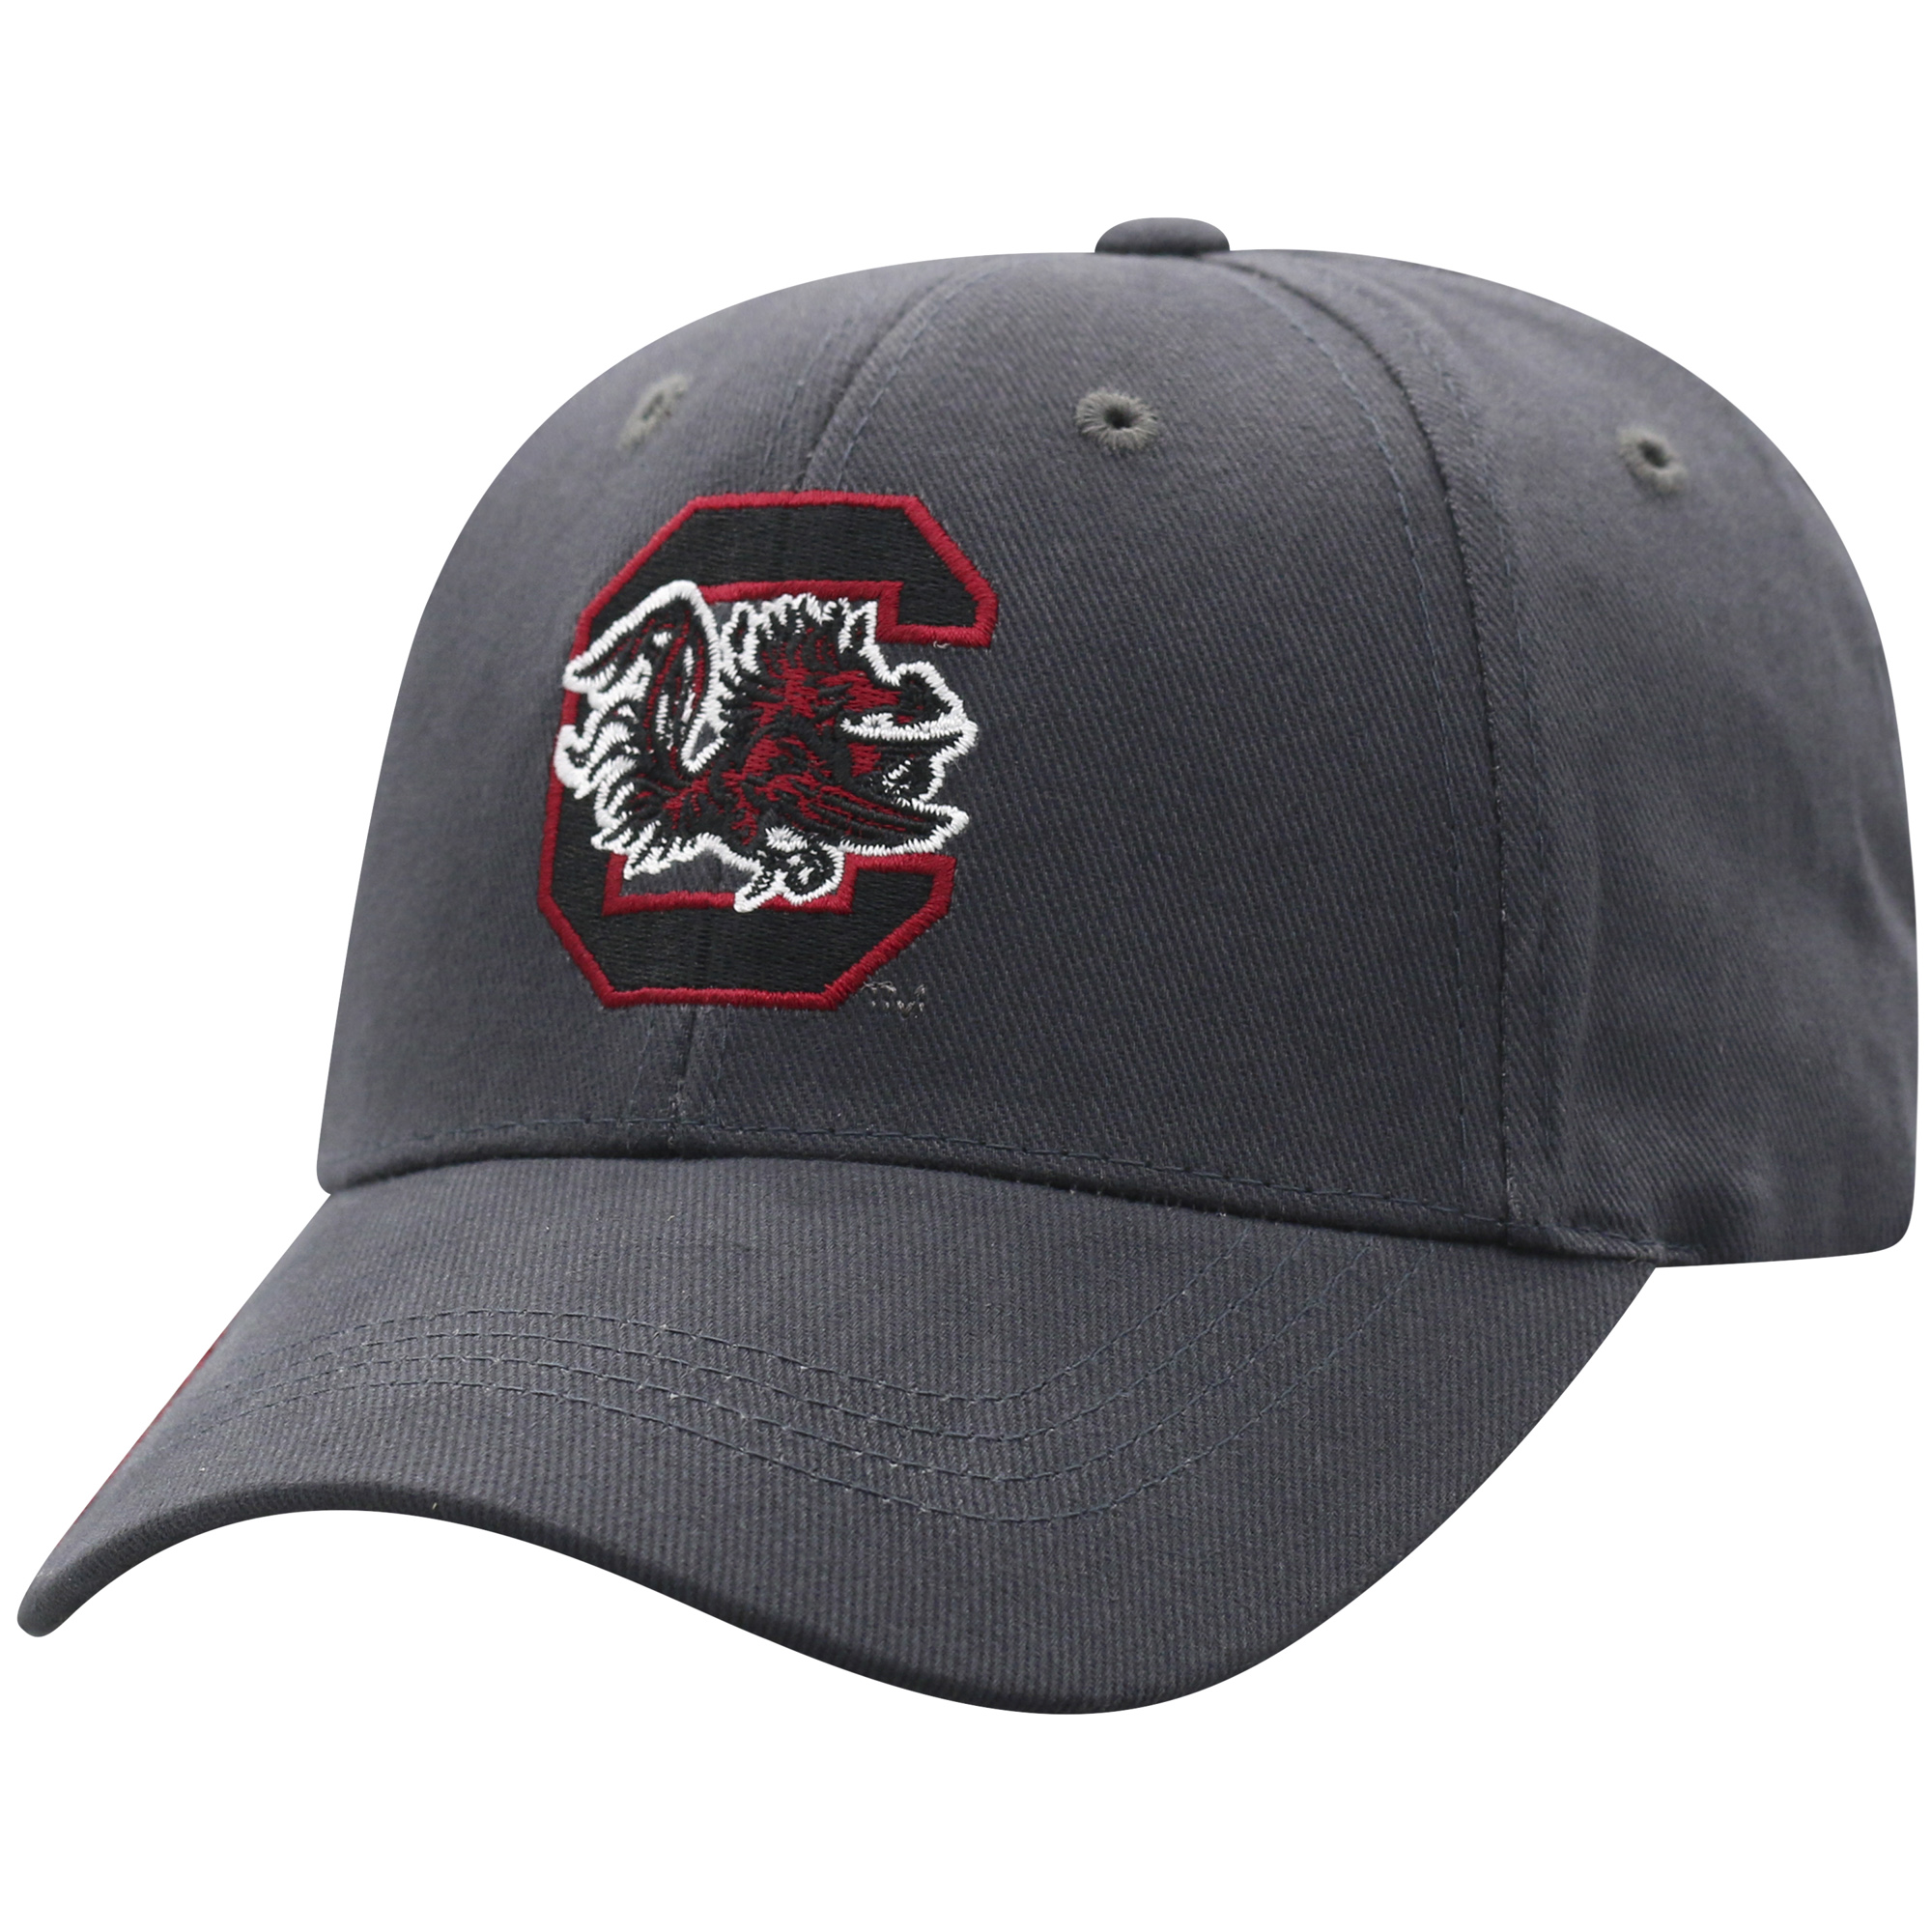 Men's Russell Charcoal South Carolina Gamecocks Endless Adjustable Hat - OSFA